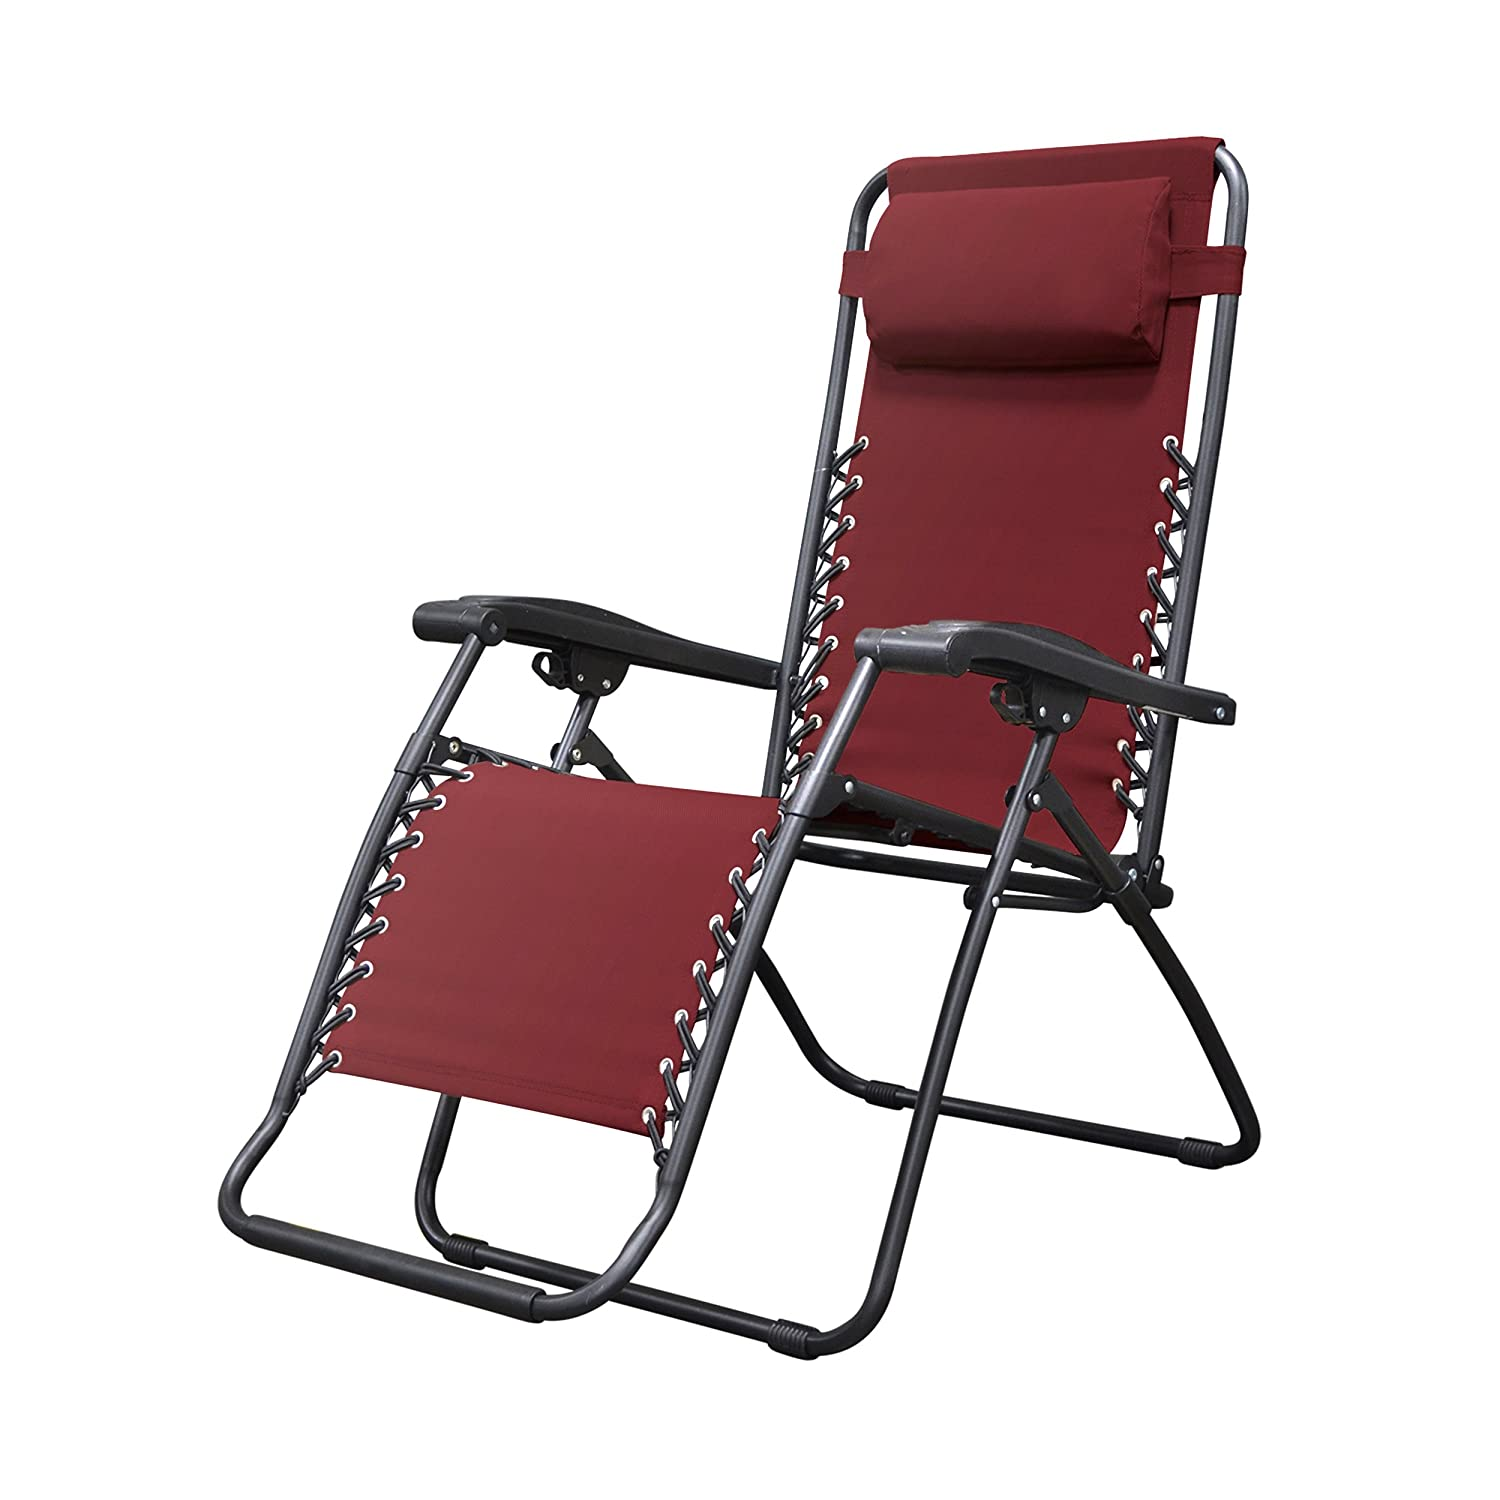 Caravan Sports Infinity Zero Gravity Chair, Burgundy